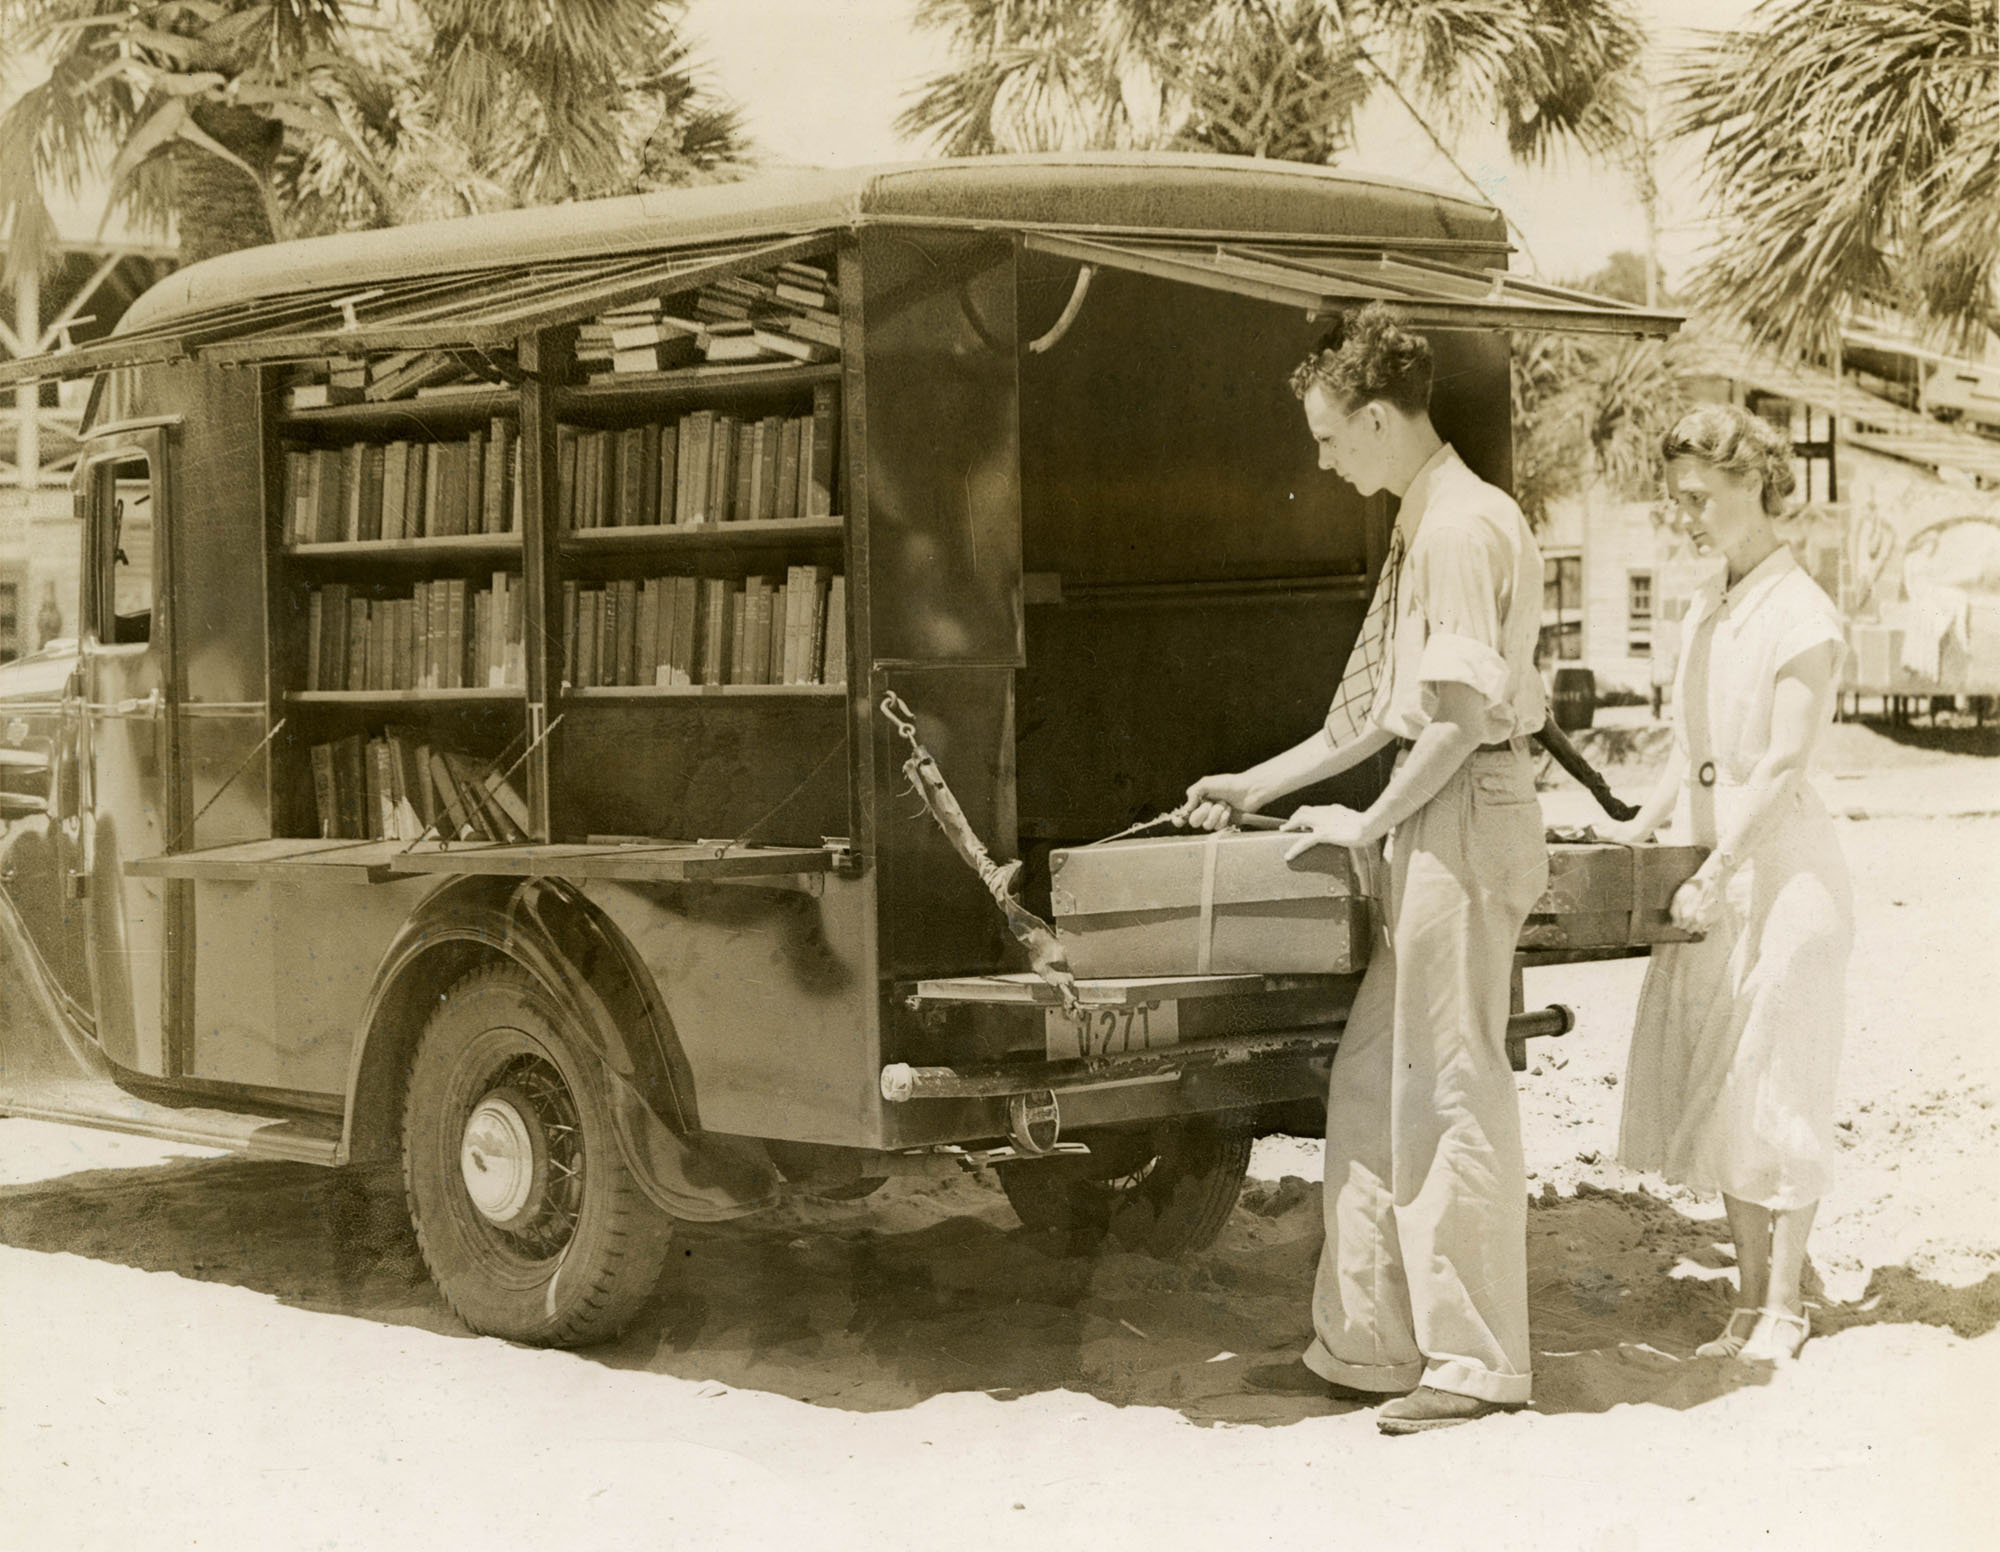 Bookmobile stopped on an unidentified beach